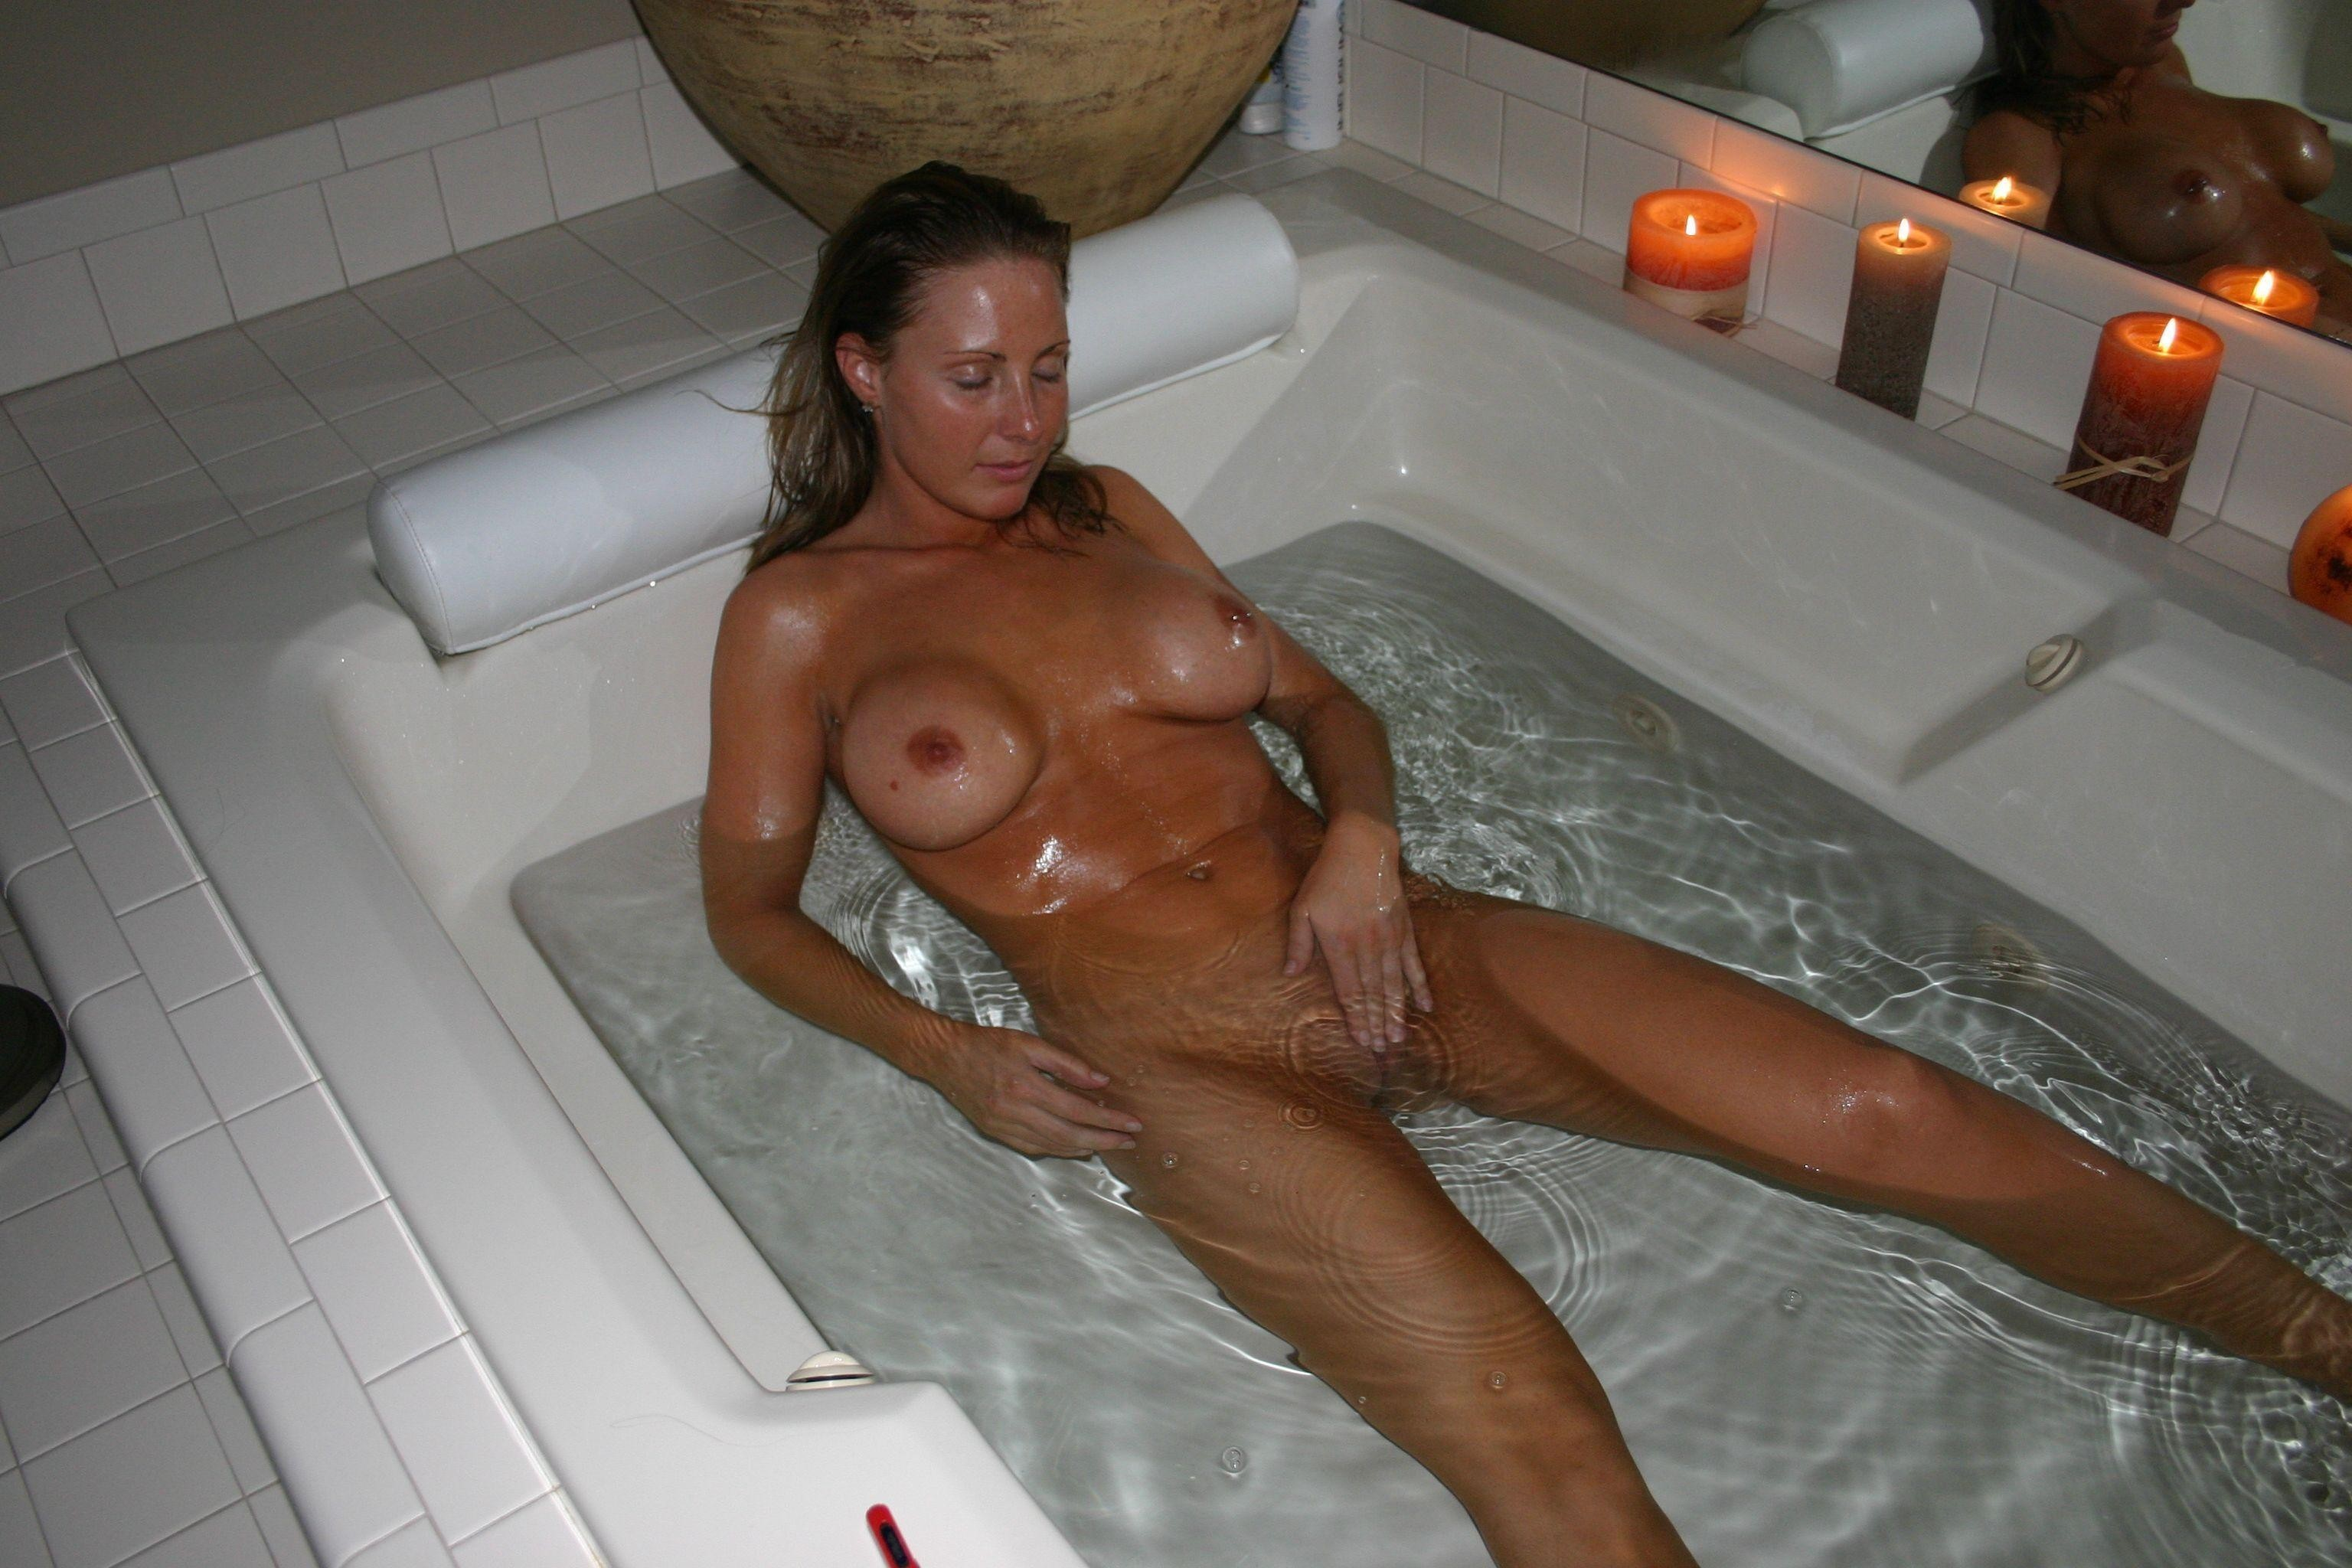 shower-pics-hot-tub-beach-nude